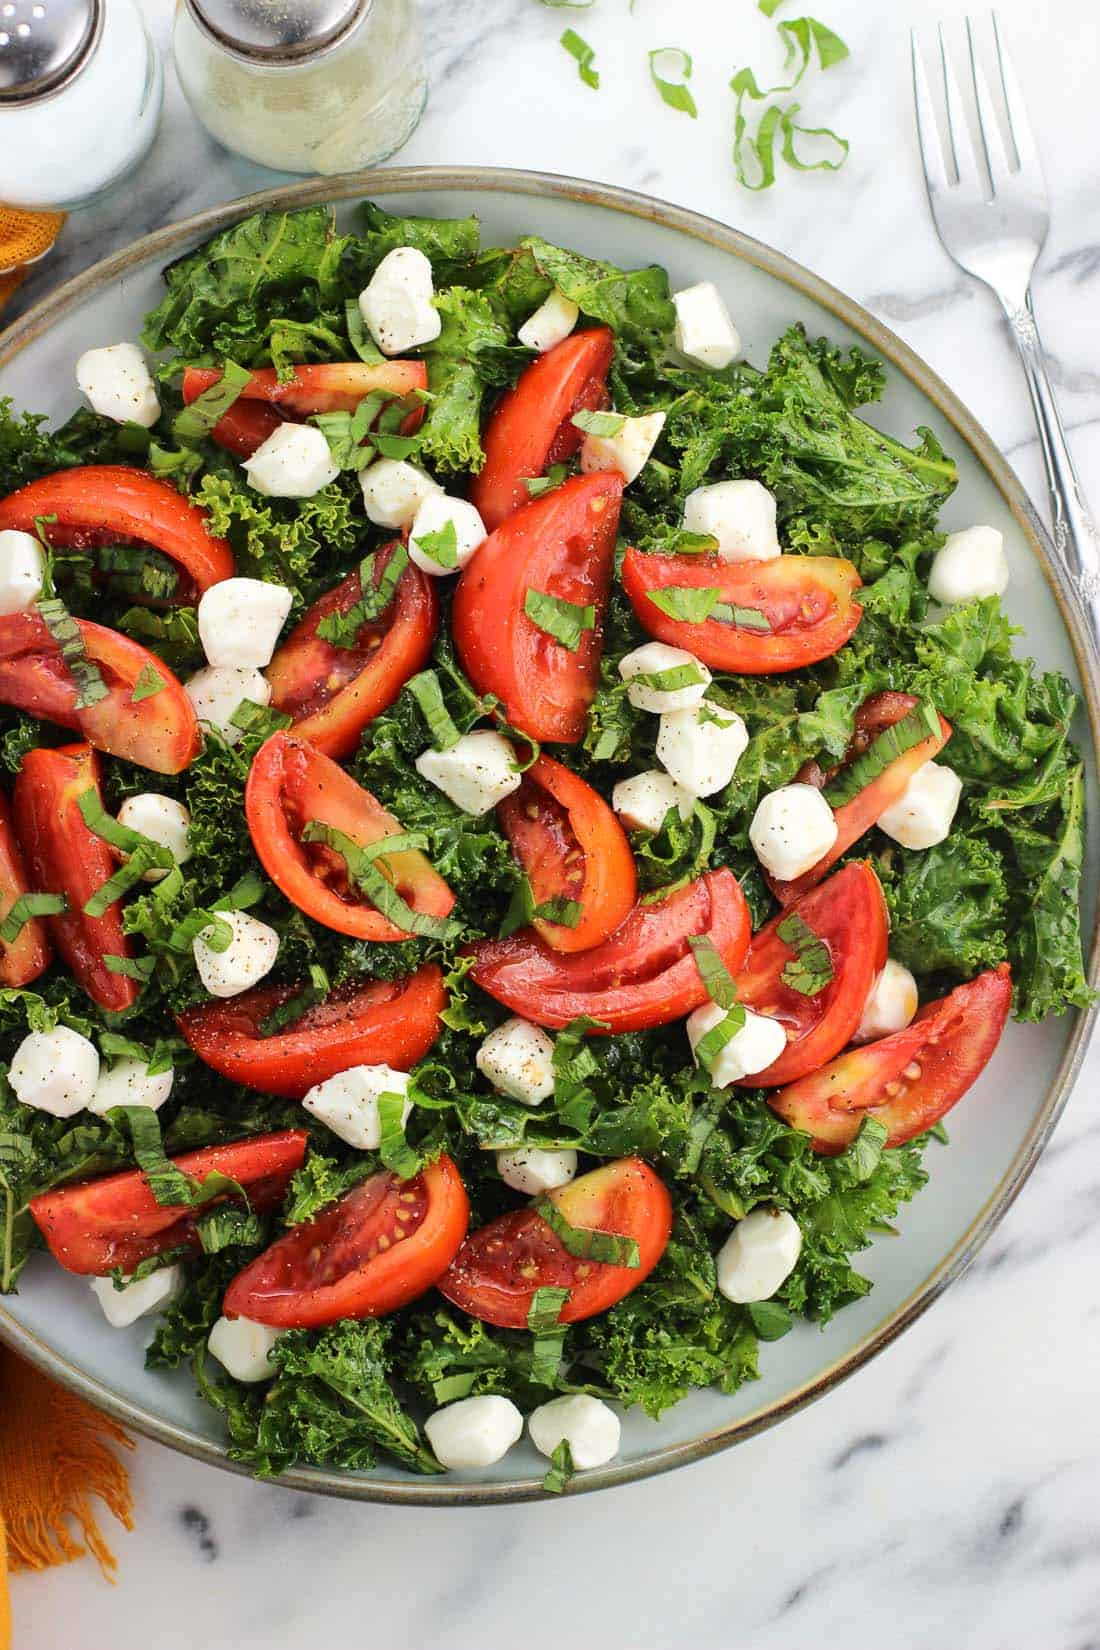 Marinated tomato and kale caprese salad is a simple take on a classic appetizer with a boost of nutrition. Massaging the kale with olive oil and balsamic vinegar tenderizes it so it isn't so tough!